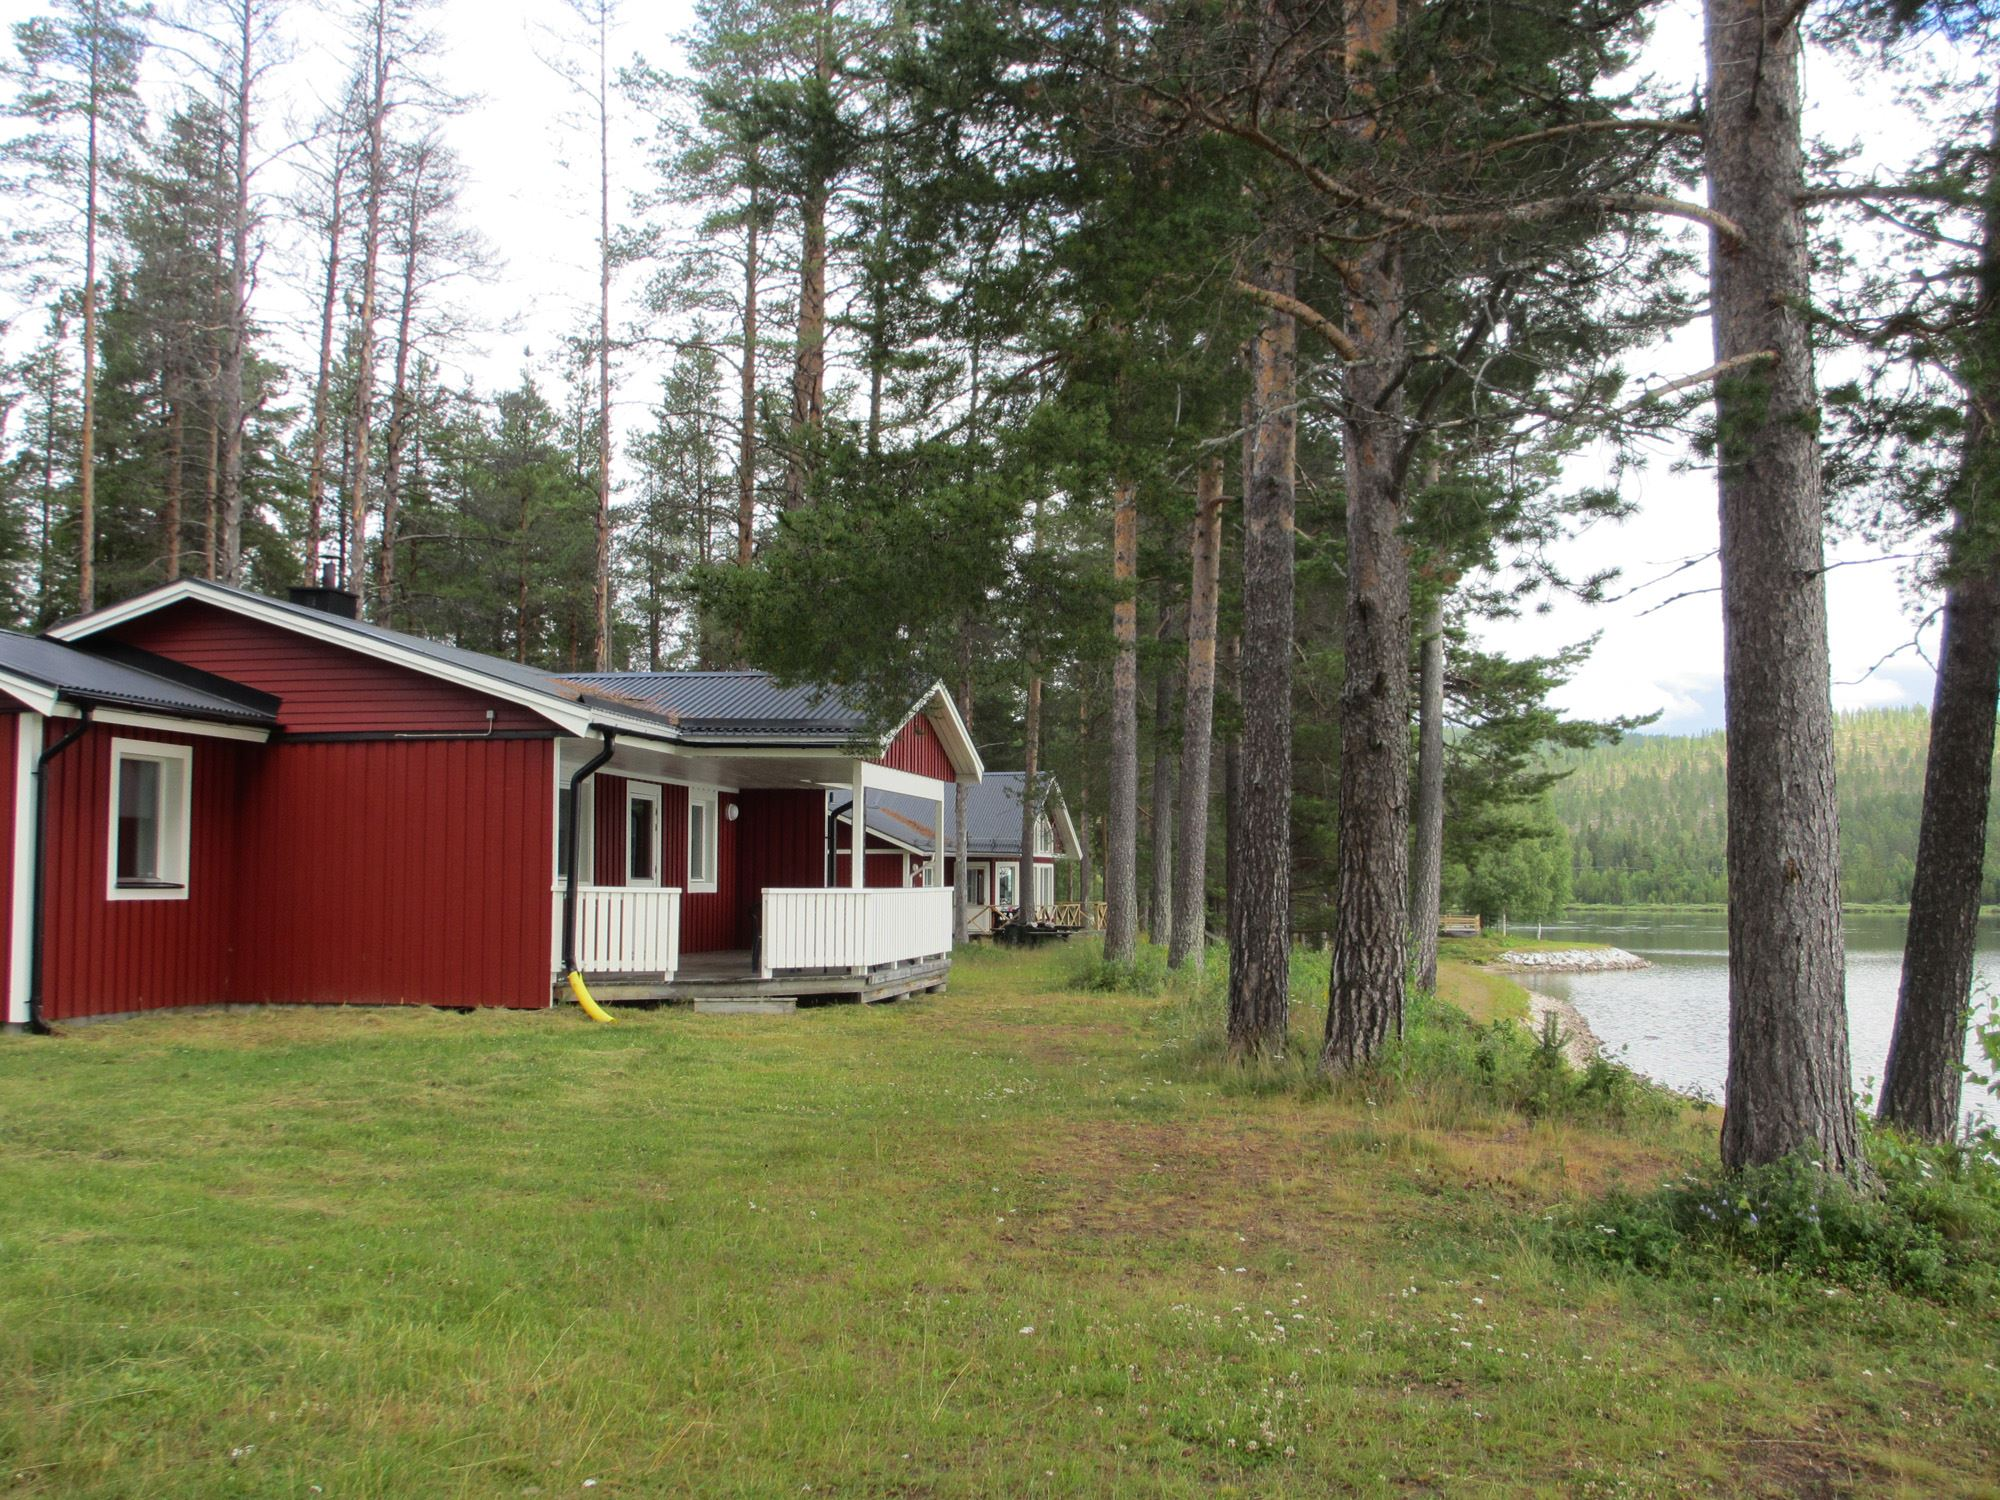 Arctic Camp Jokkmokk/Cottages